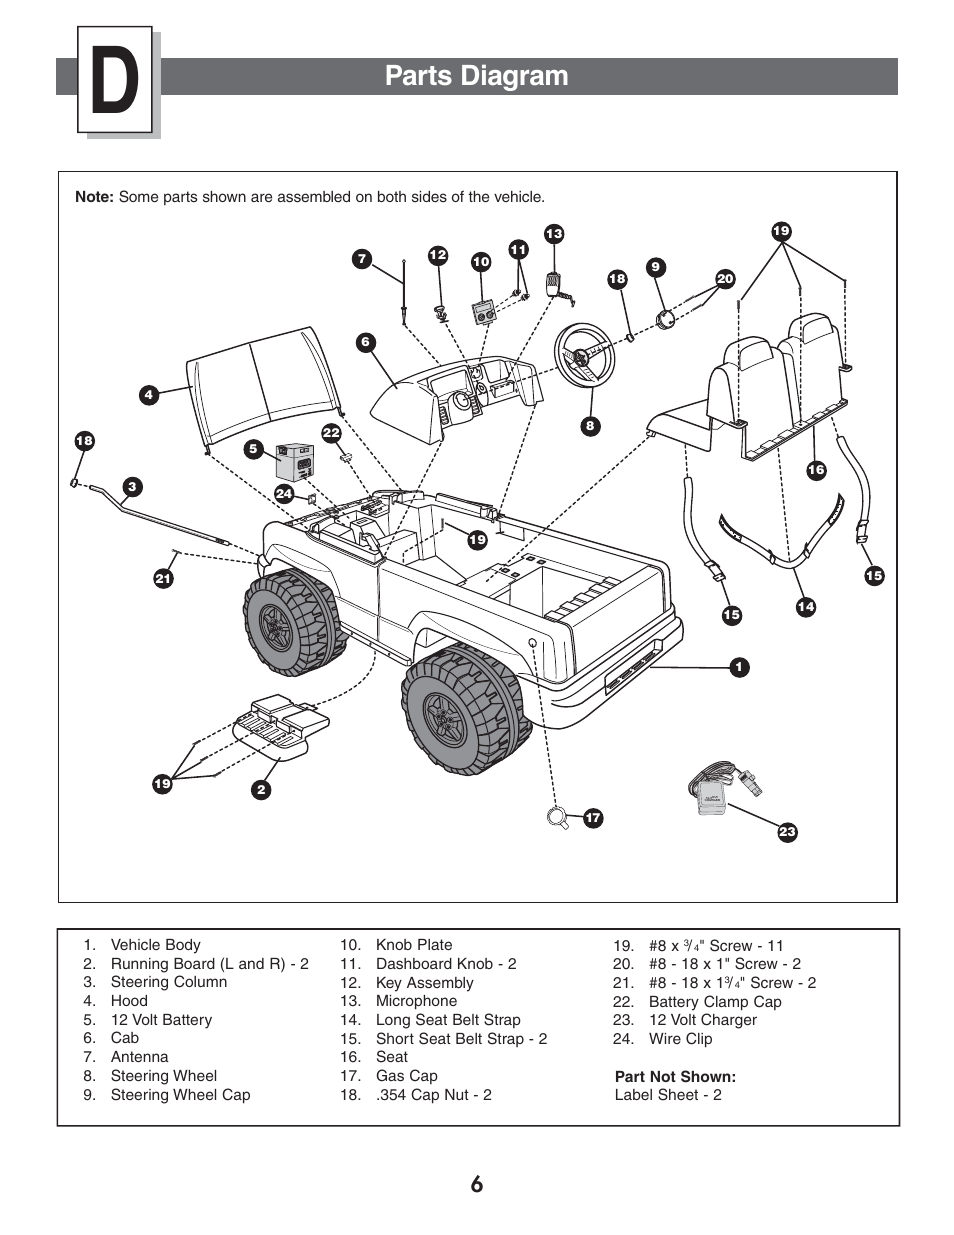 medium resolution of parts diagram fisher price power wheels by fisher price chevrolet silverado b1476 user manual page 6 32